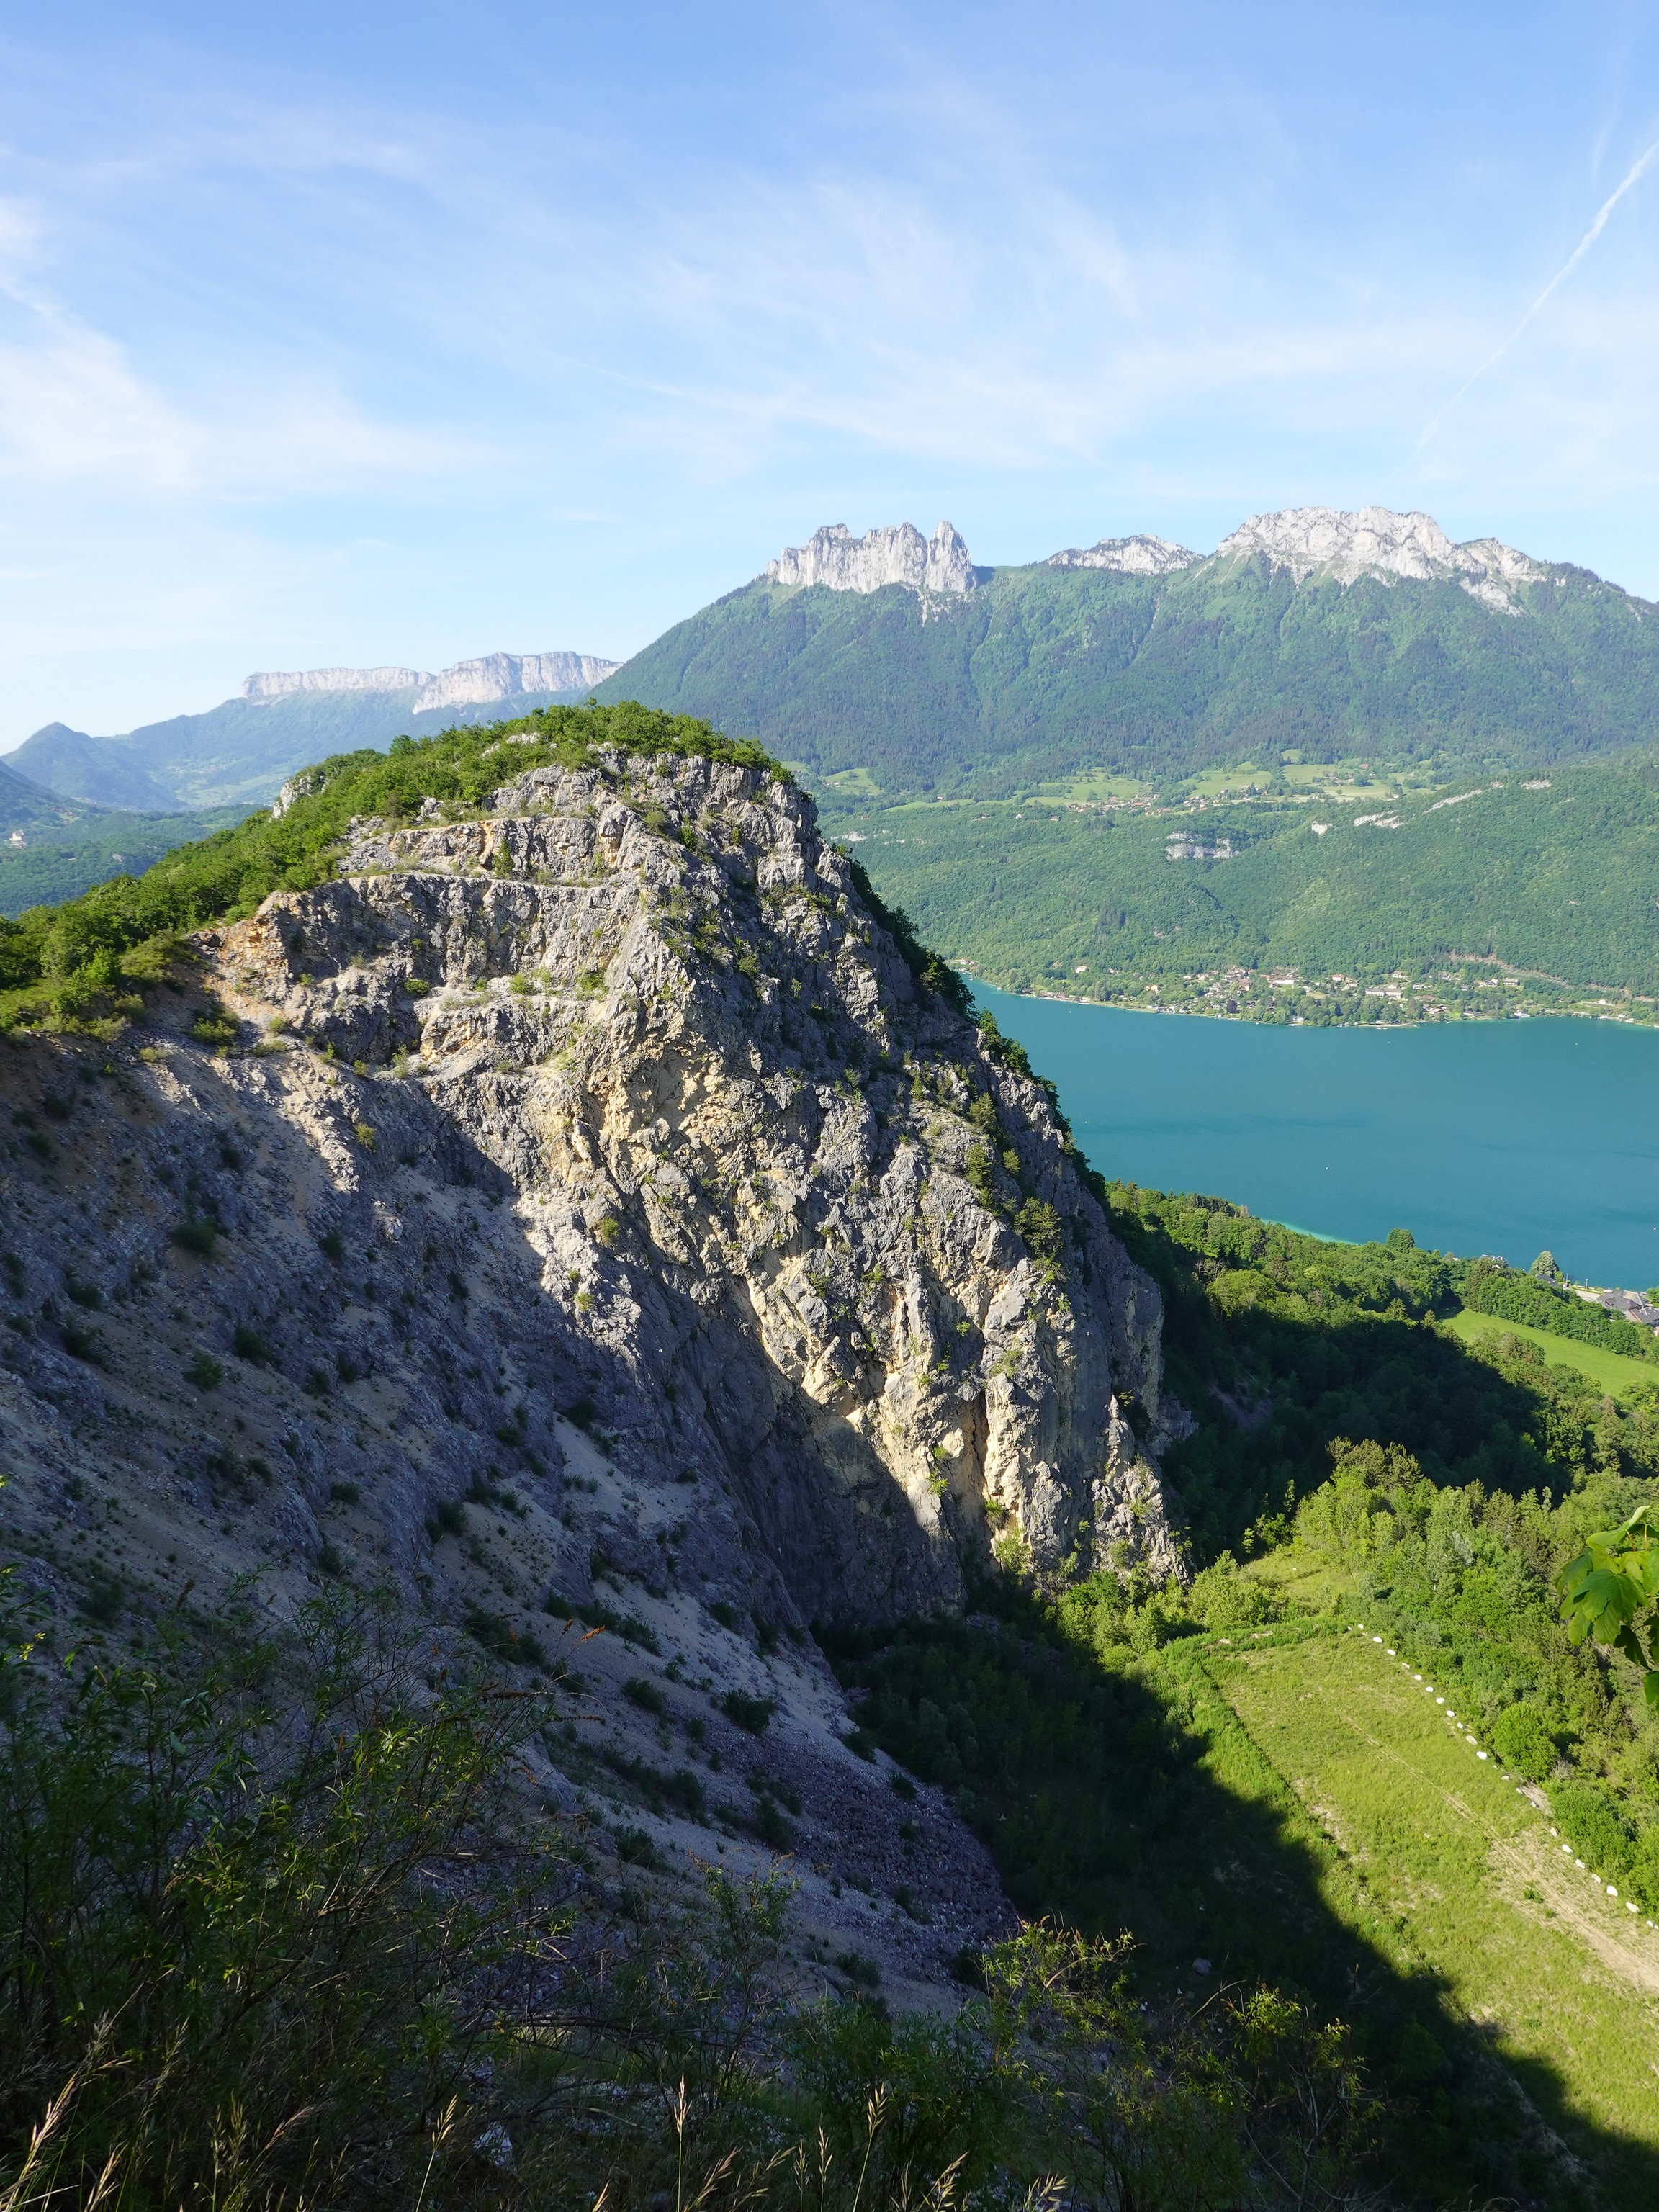 139405 download wallpaper Nature, Rocks, Tops, Vertex, Sea, Branches, Mountains screensavers and pictures for free